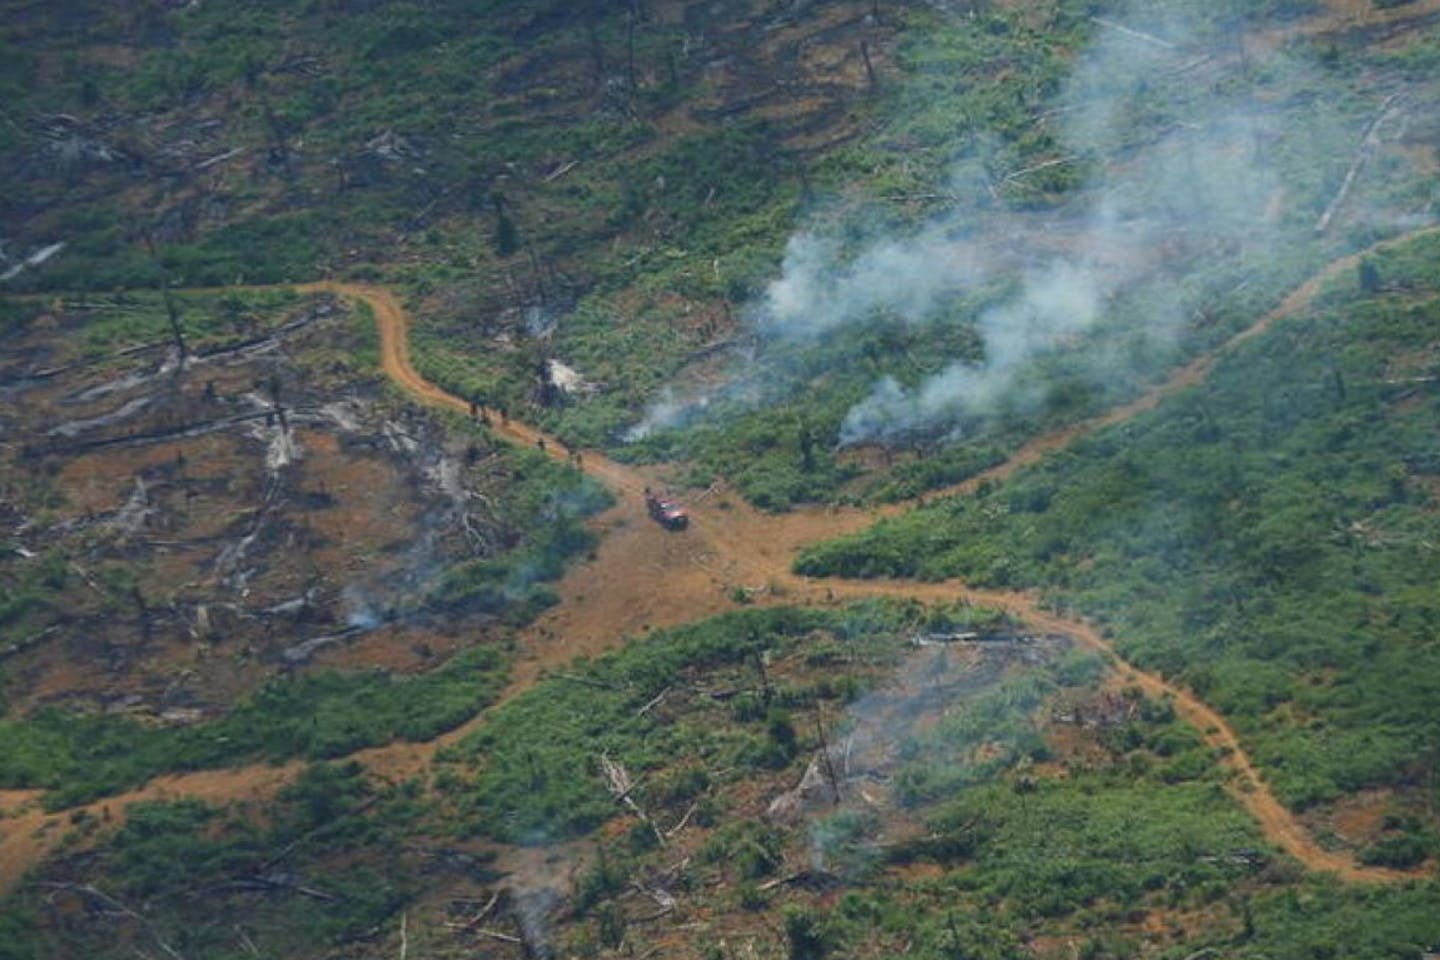 aerial view of deforested plot in amazon